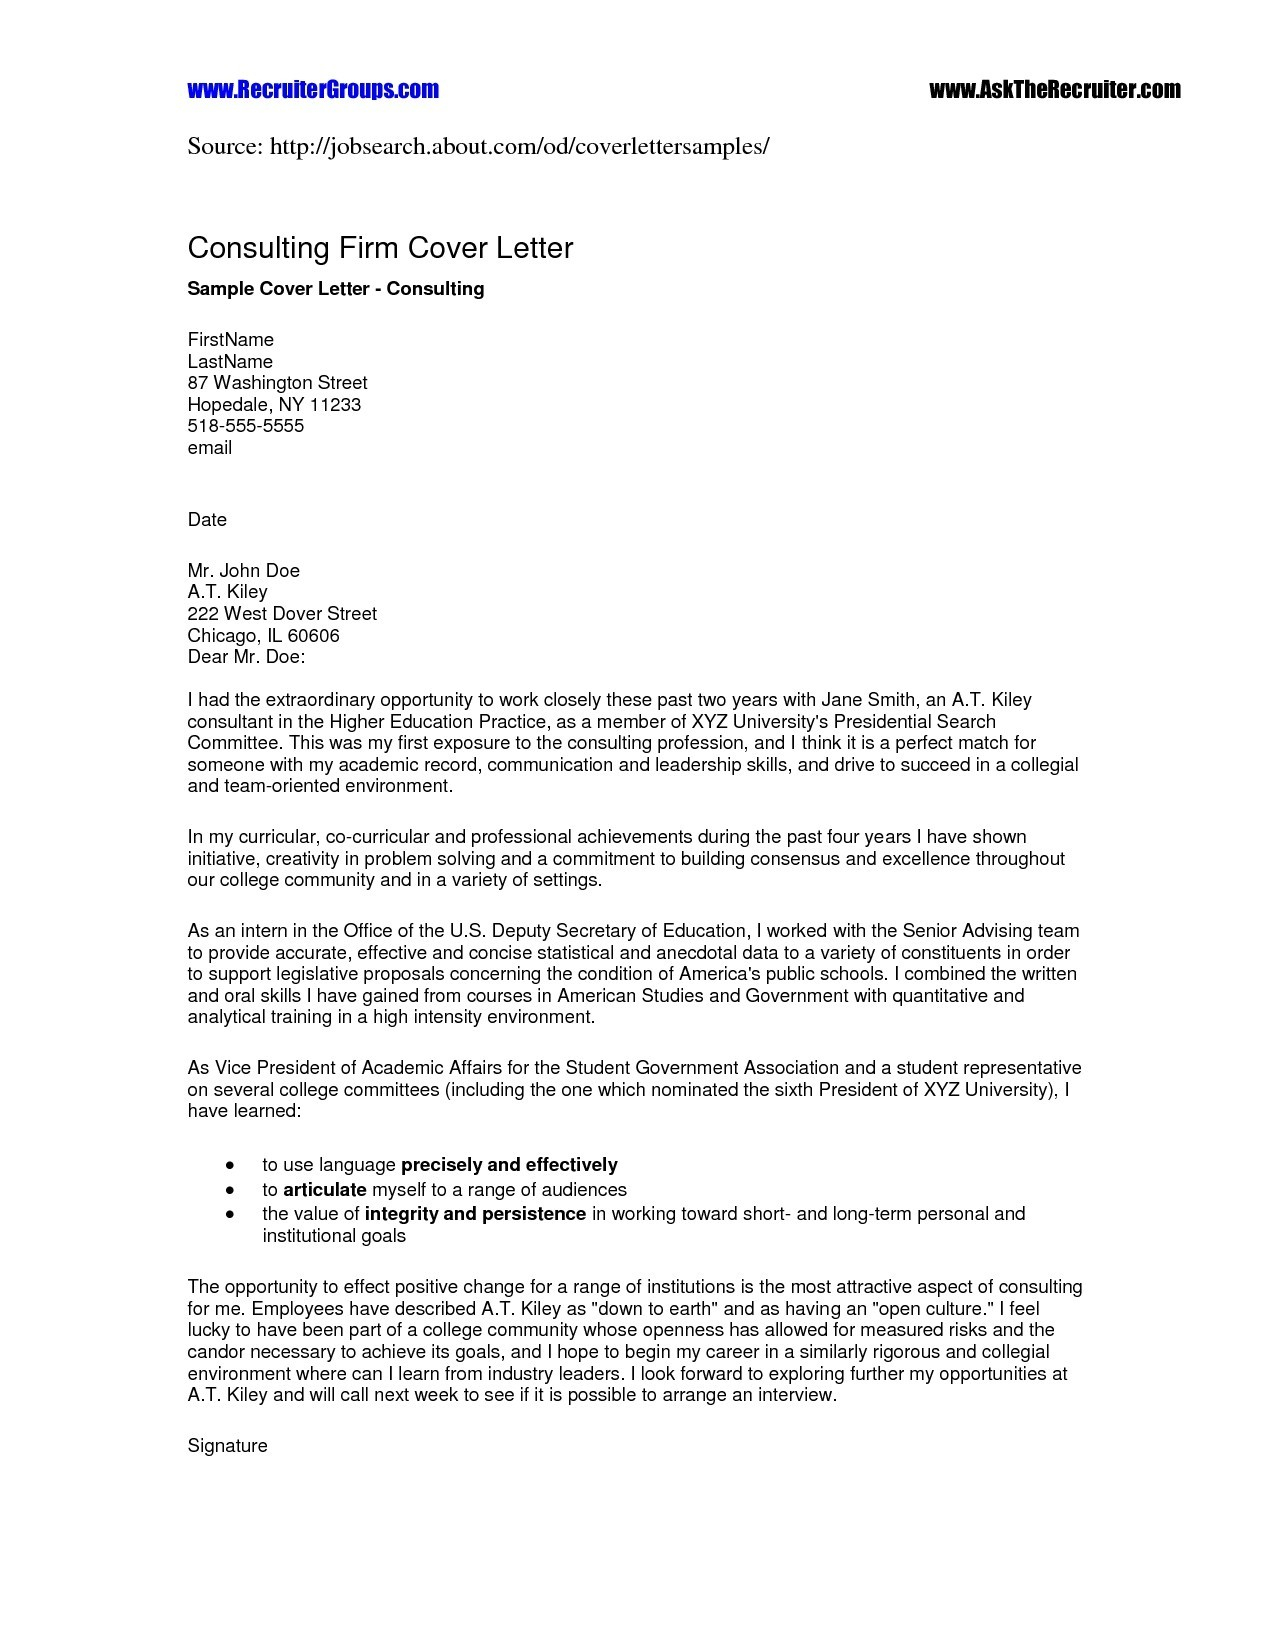 Mortgage Commitment Letter Template - Job Letter for Loan New Job Letter for Loan Best Letter Template for